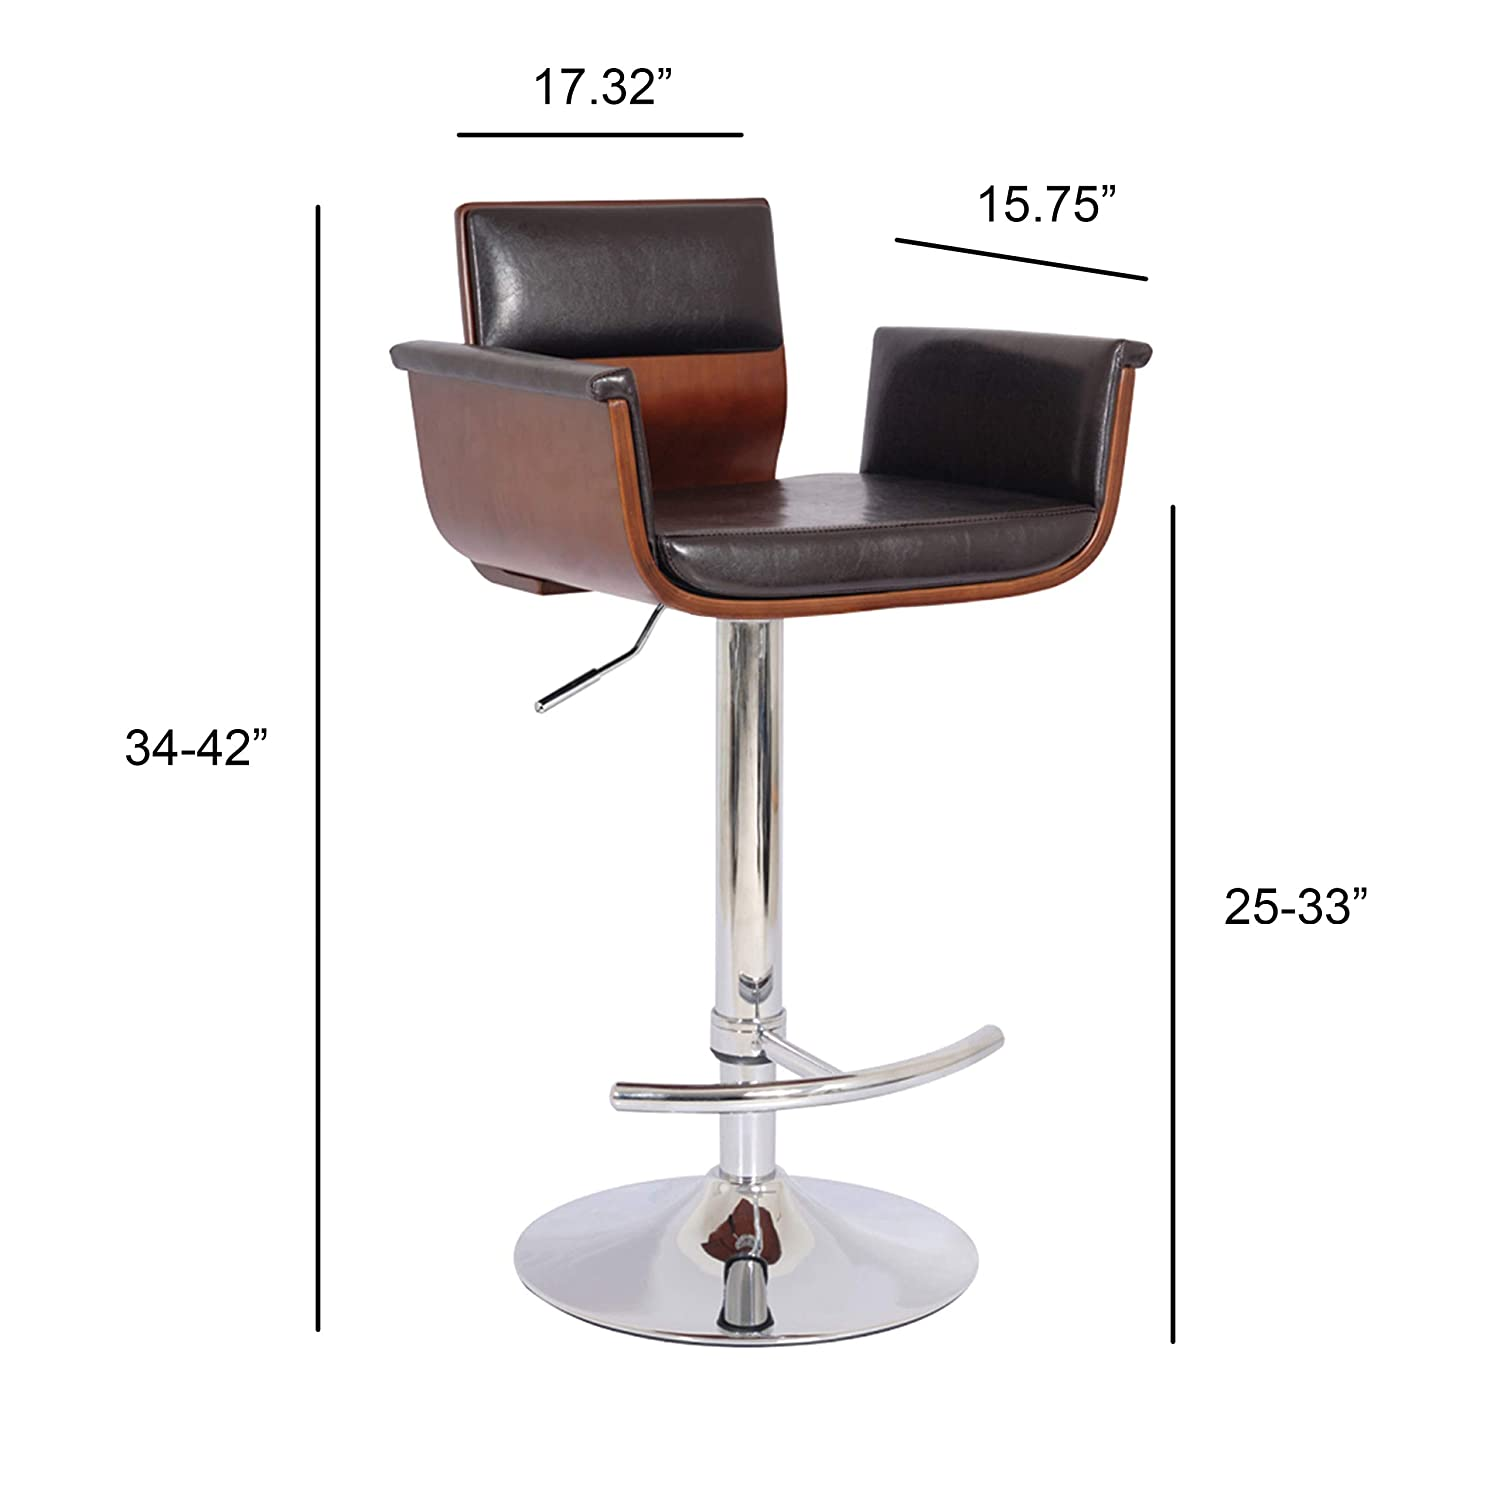 Fabulous Bentwood Adjustable Swivel Barstool Cherry Wood Finish And Shiny Black Polyurethane And Chrome Base With Curved Seat And Back Pabps2019 Chair Design Images Pabps2019Com